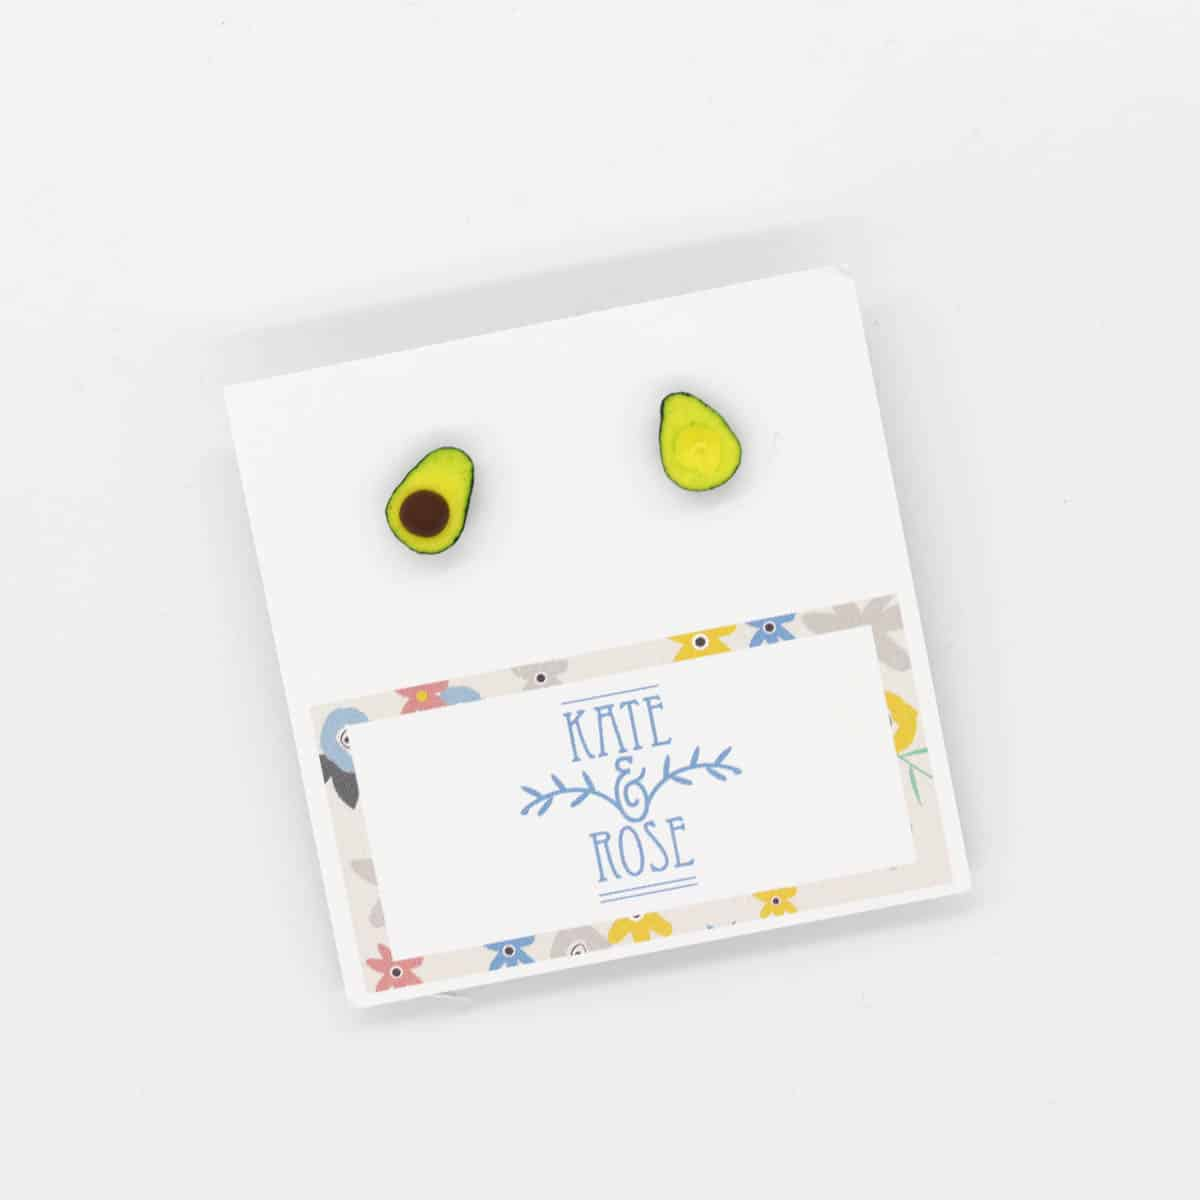 Avocados Half Studs  By Kate And Rose (Fitzroy)